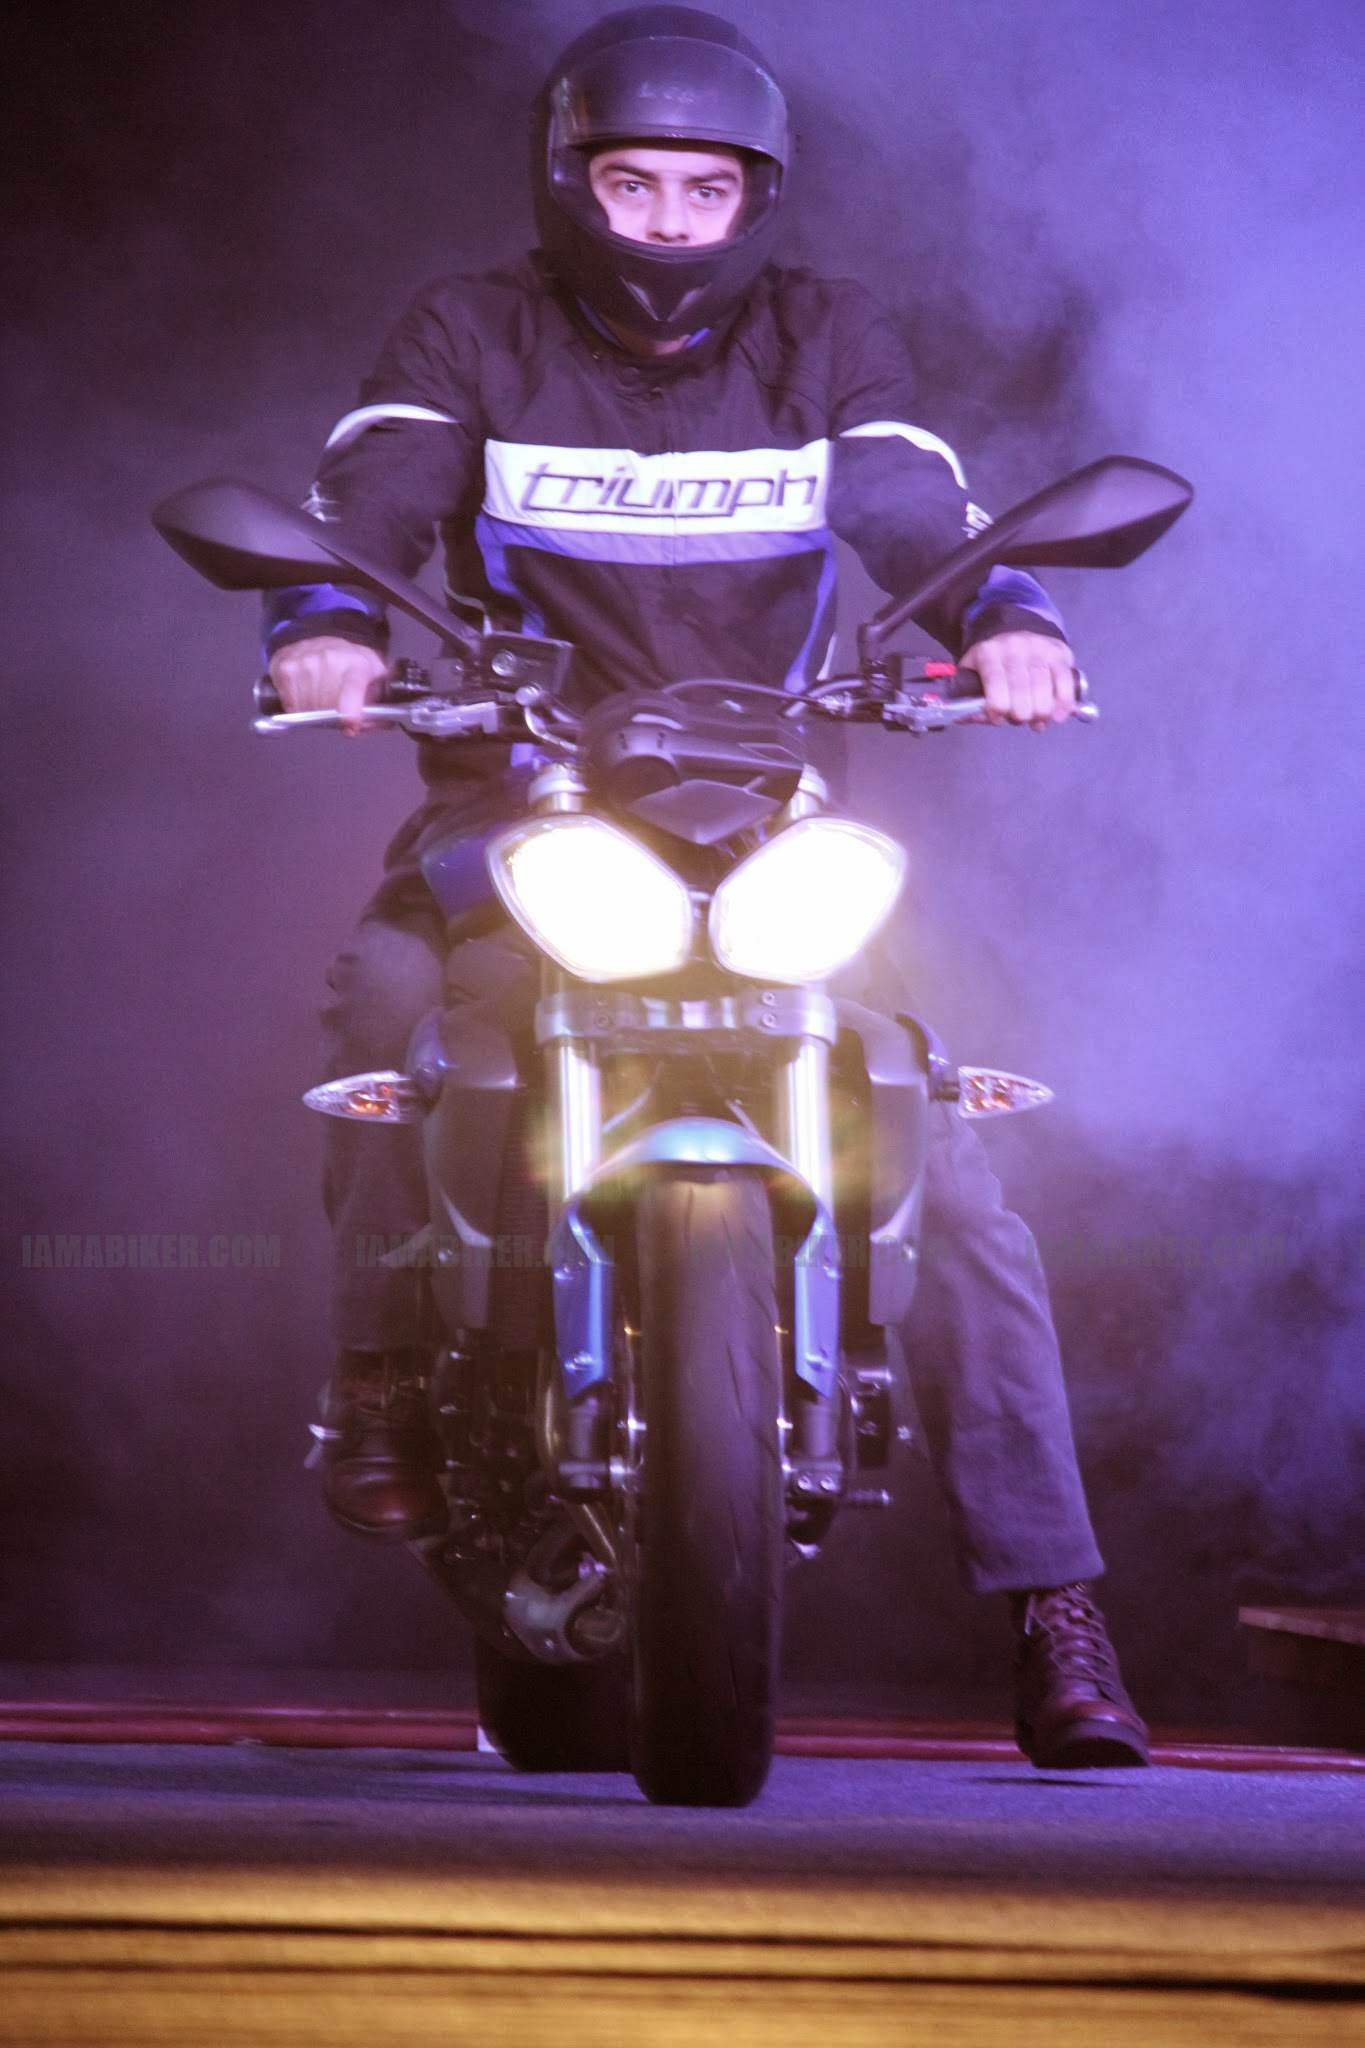 triumph motorcycles india launch - 09